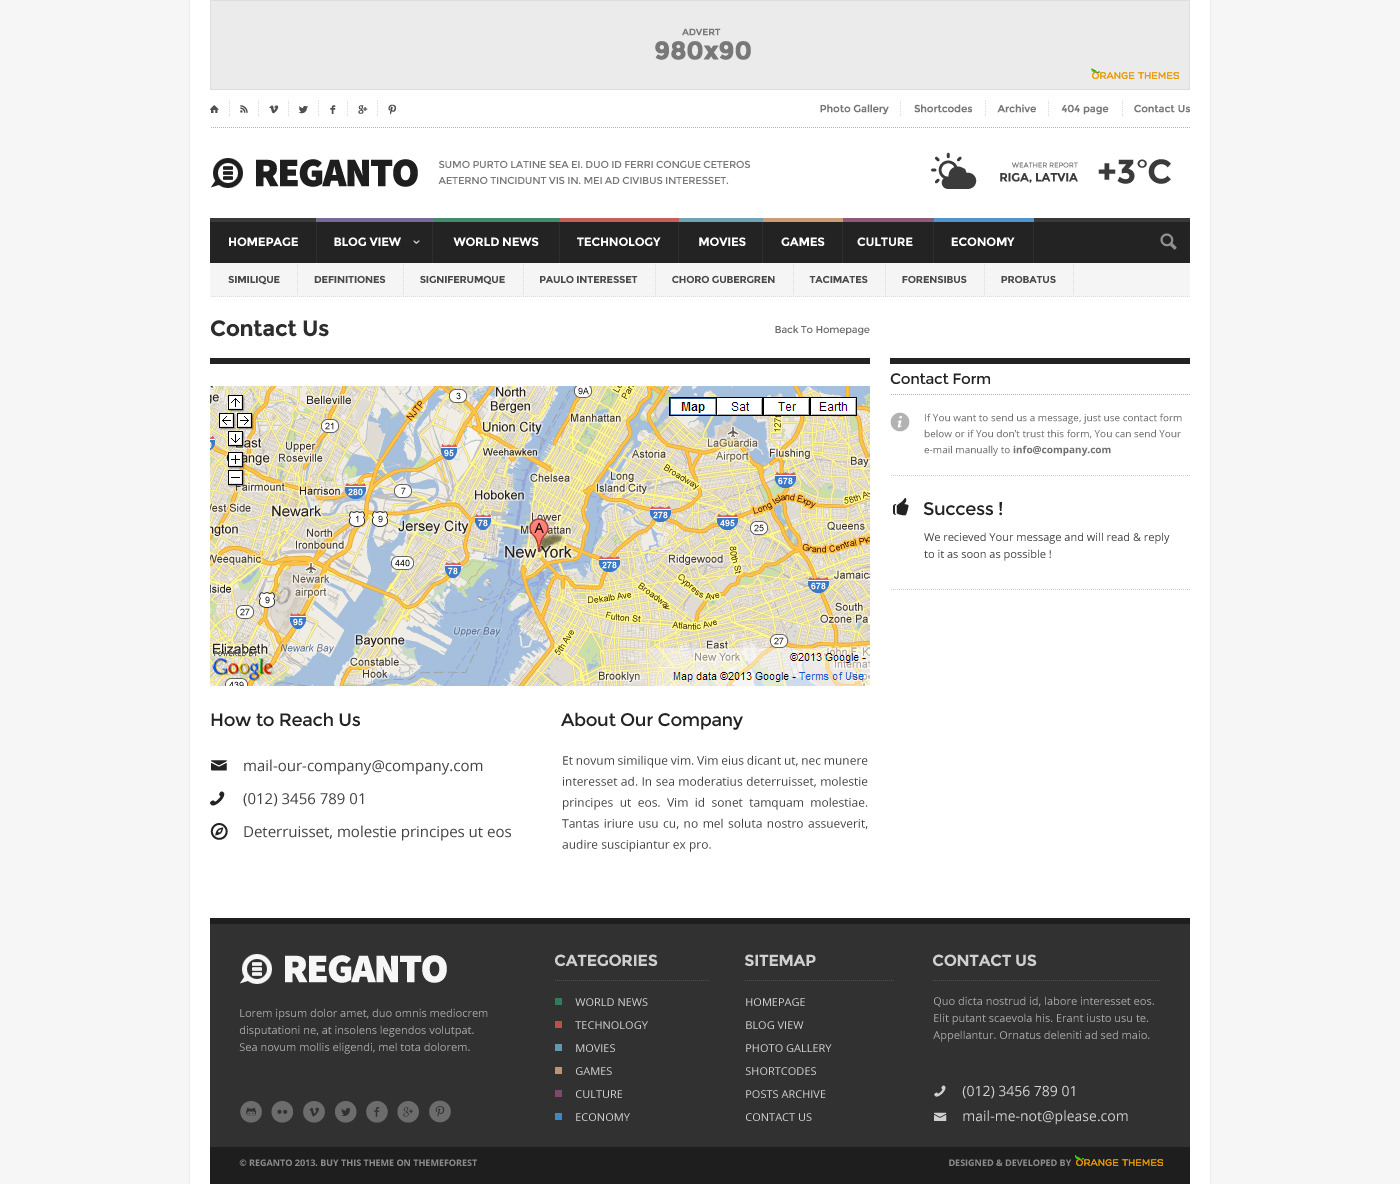 Reganto - Massive Magazine Theme